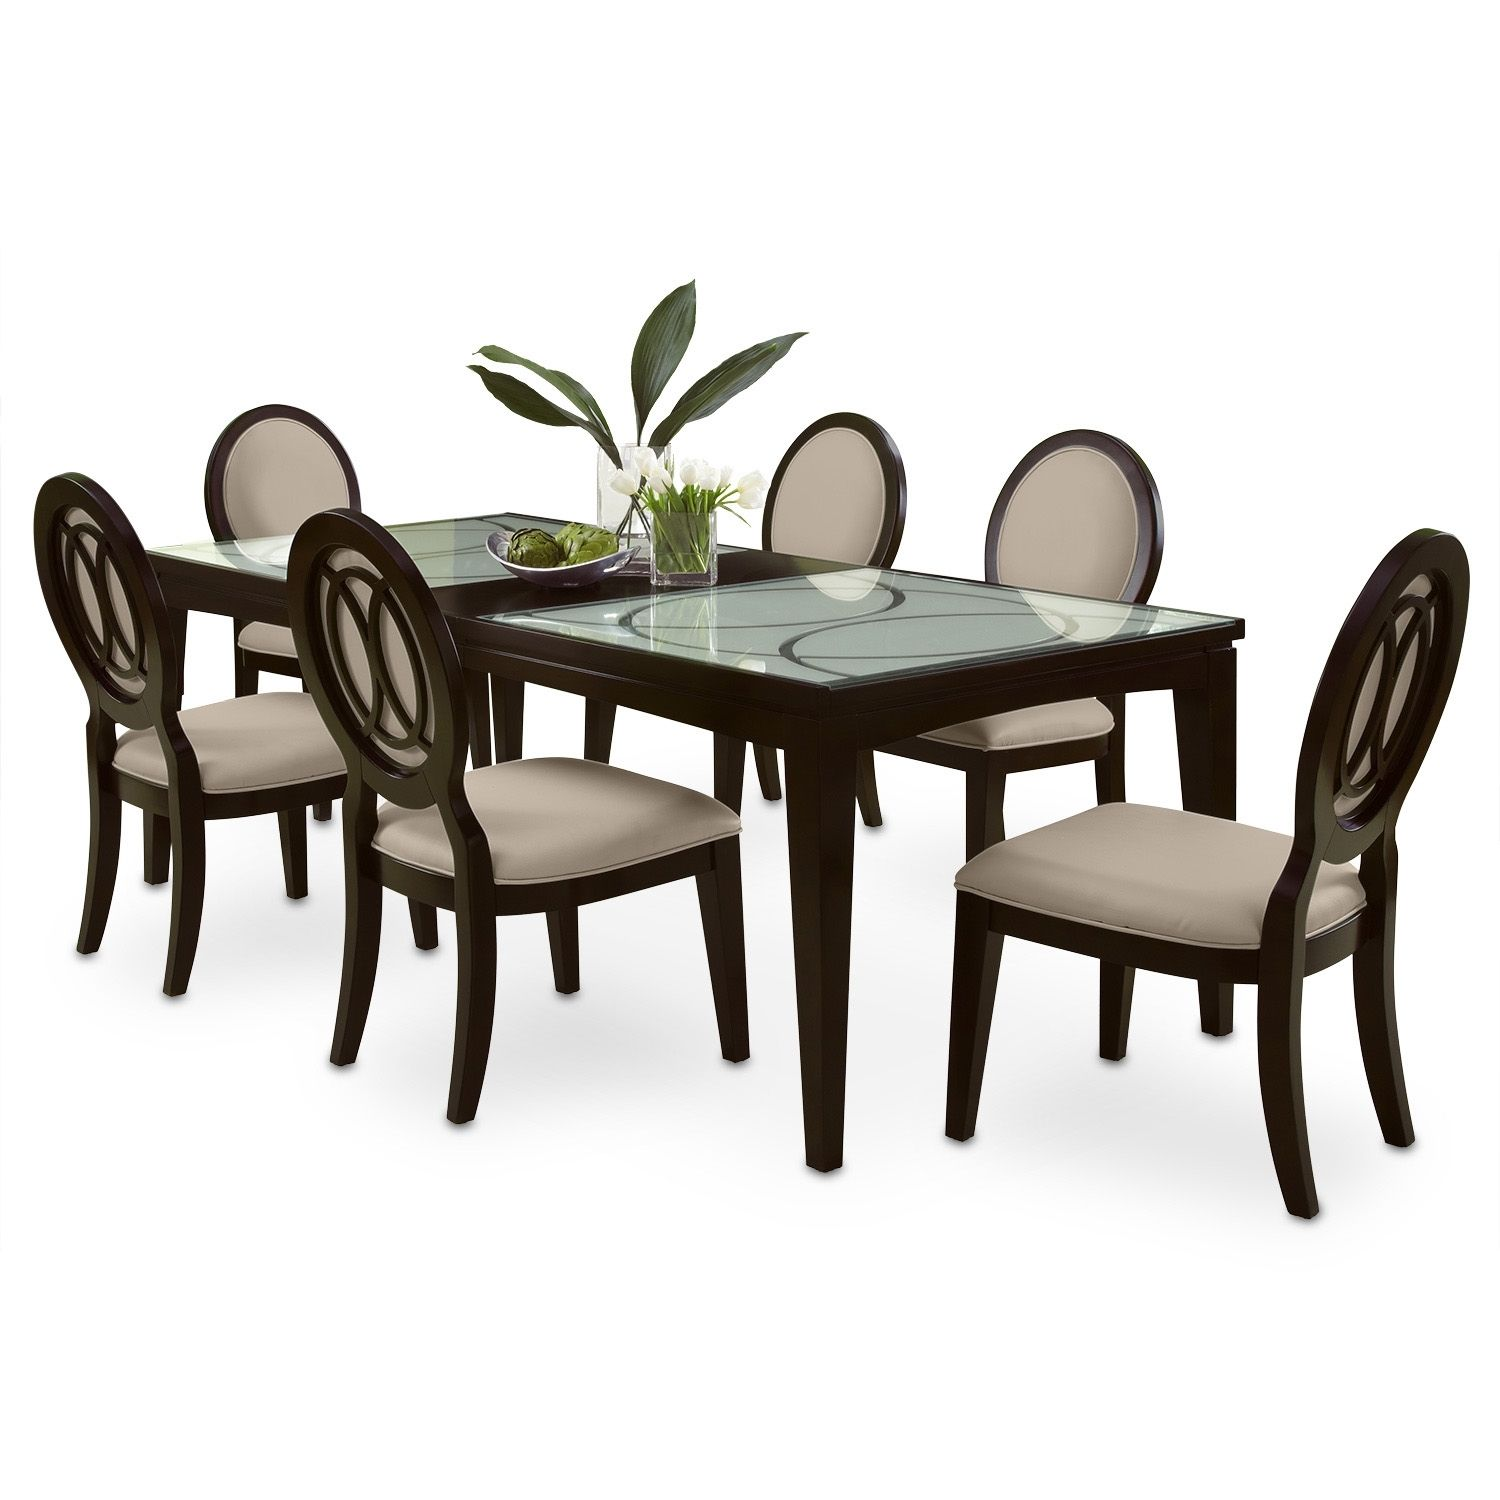 Charming American Signature Dining Room Sets